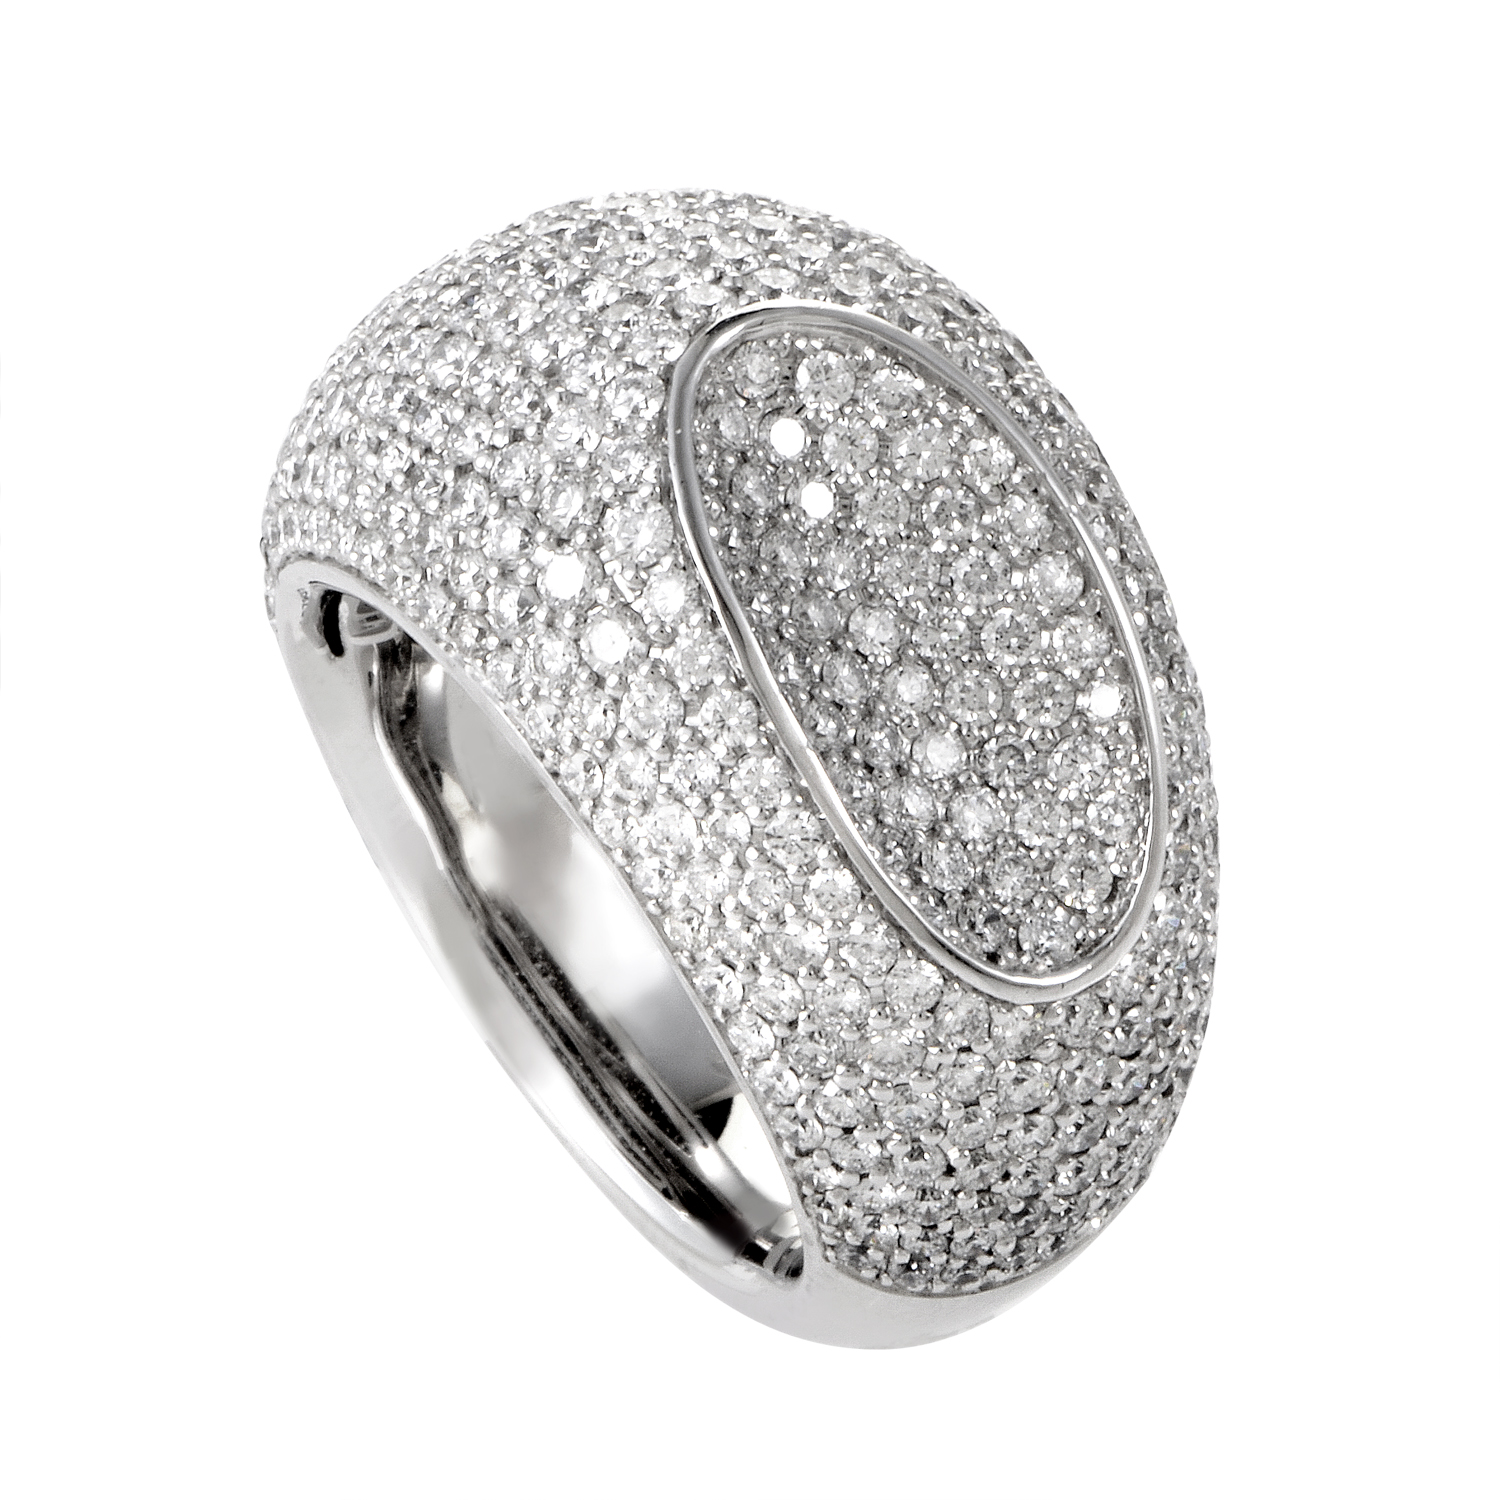 18K White Gold Diamond Pave Ring 1214-577-8